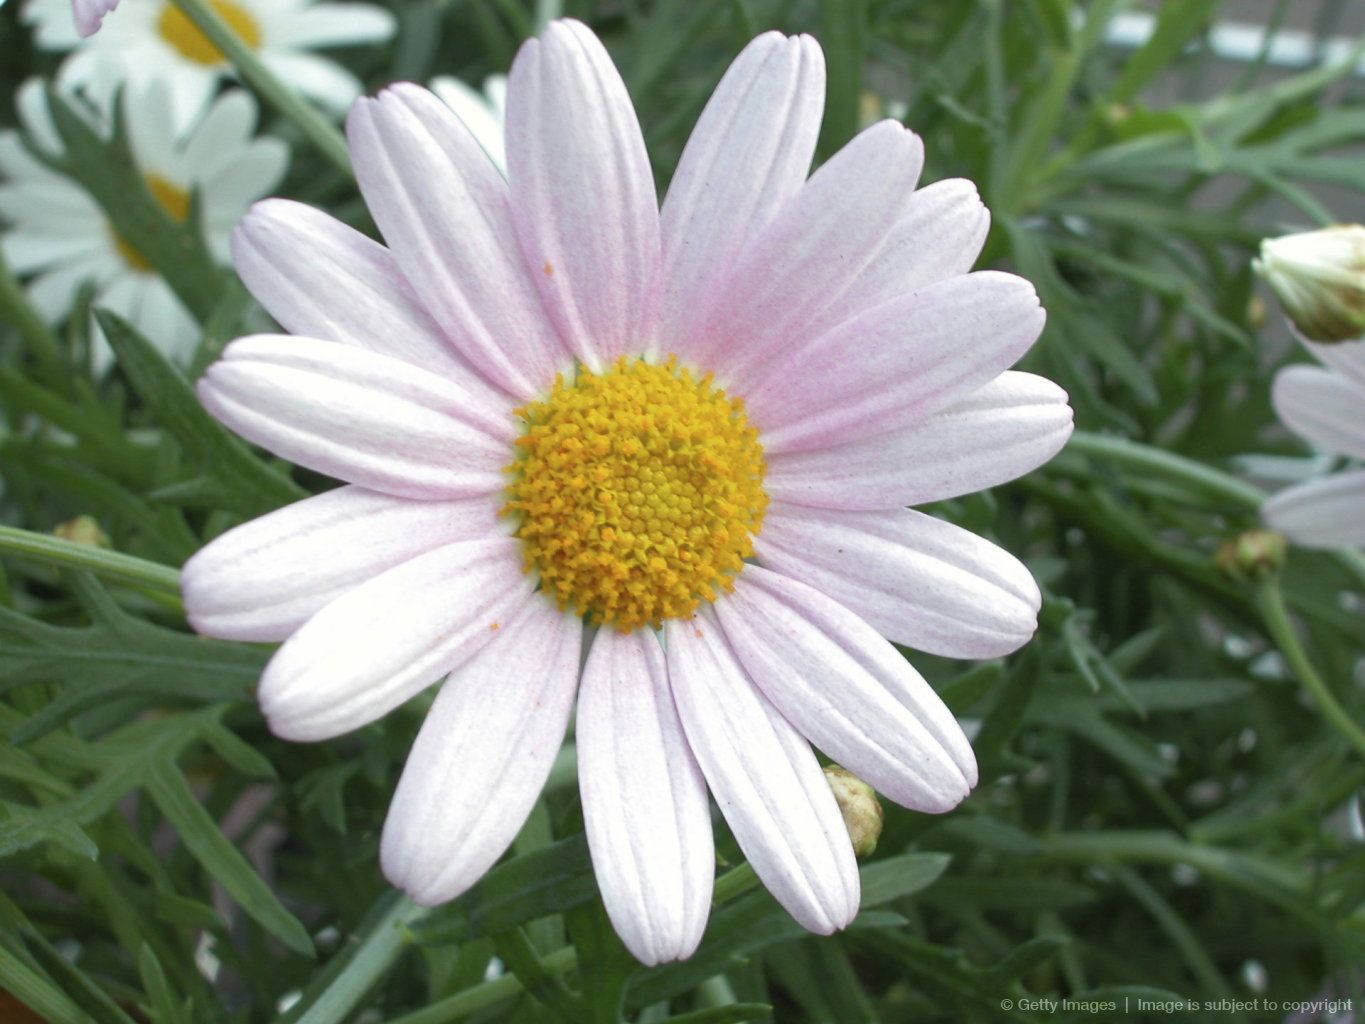 Image detail for daisy daisies pinterest explore daisy flowers daisies and more izmirmasajfo Image collections